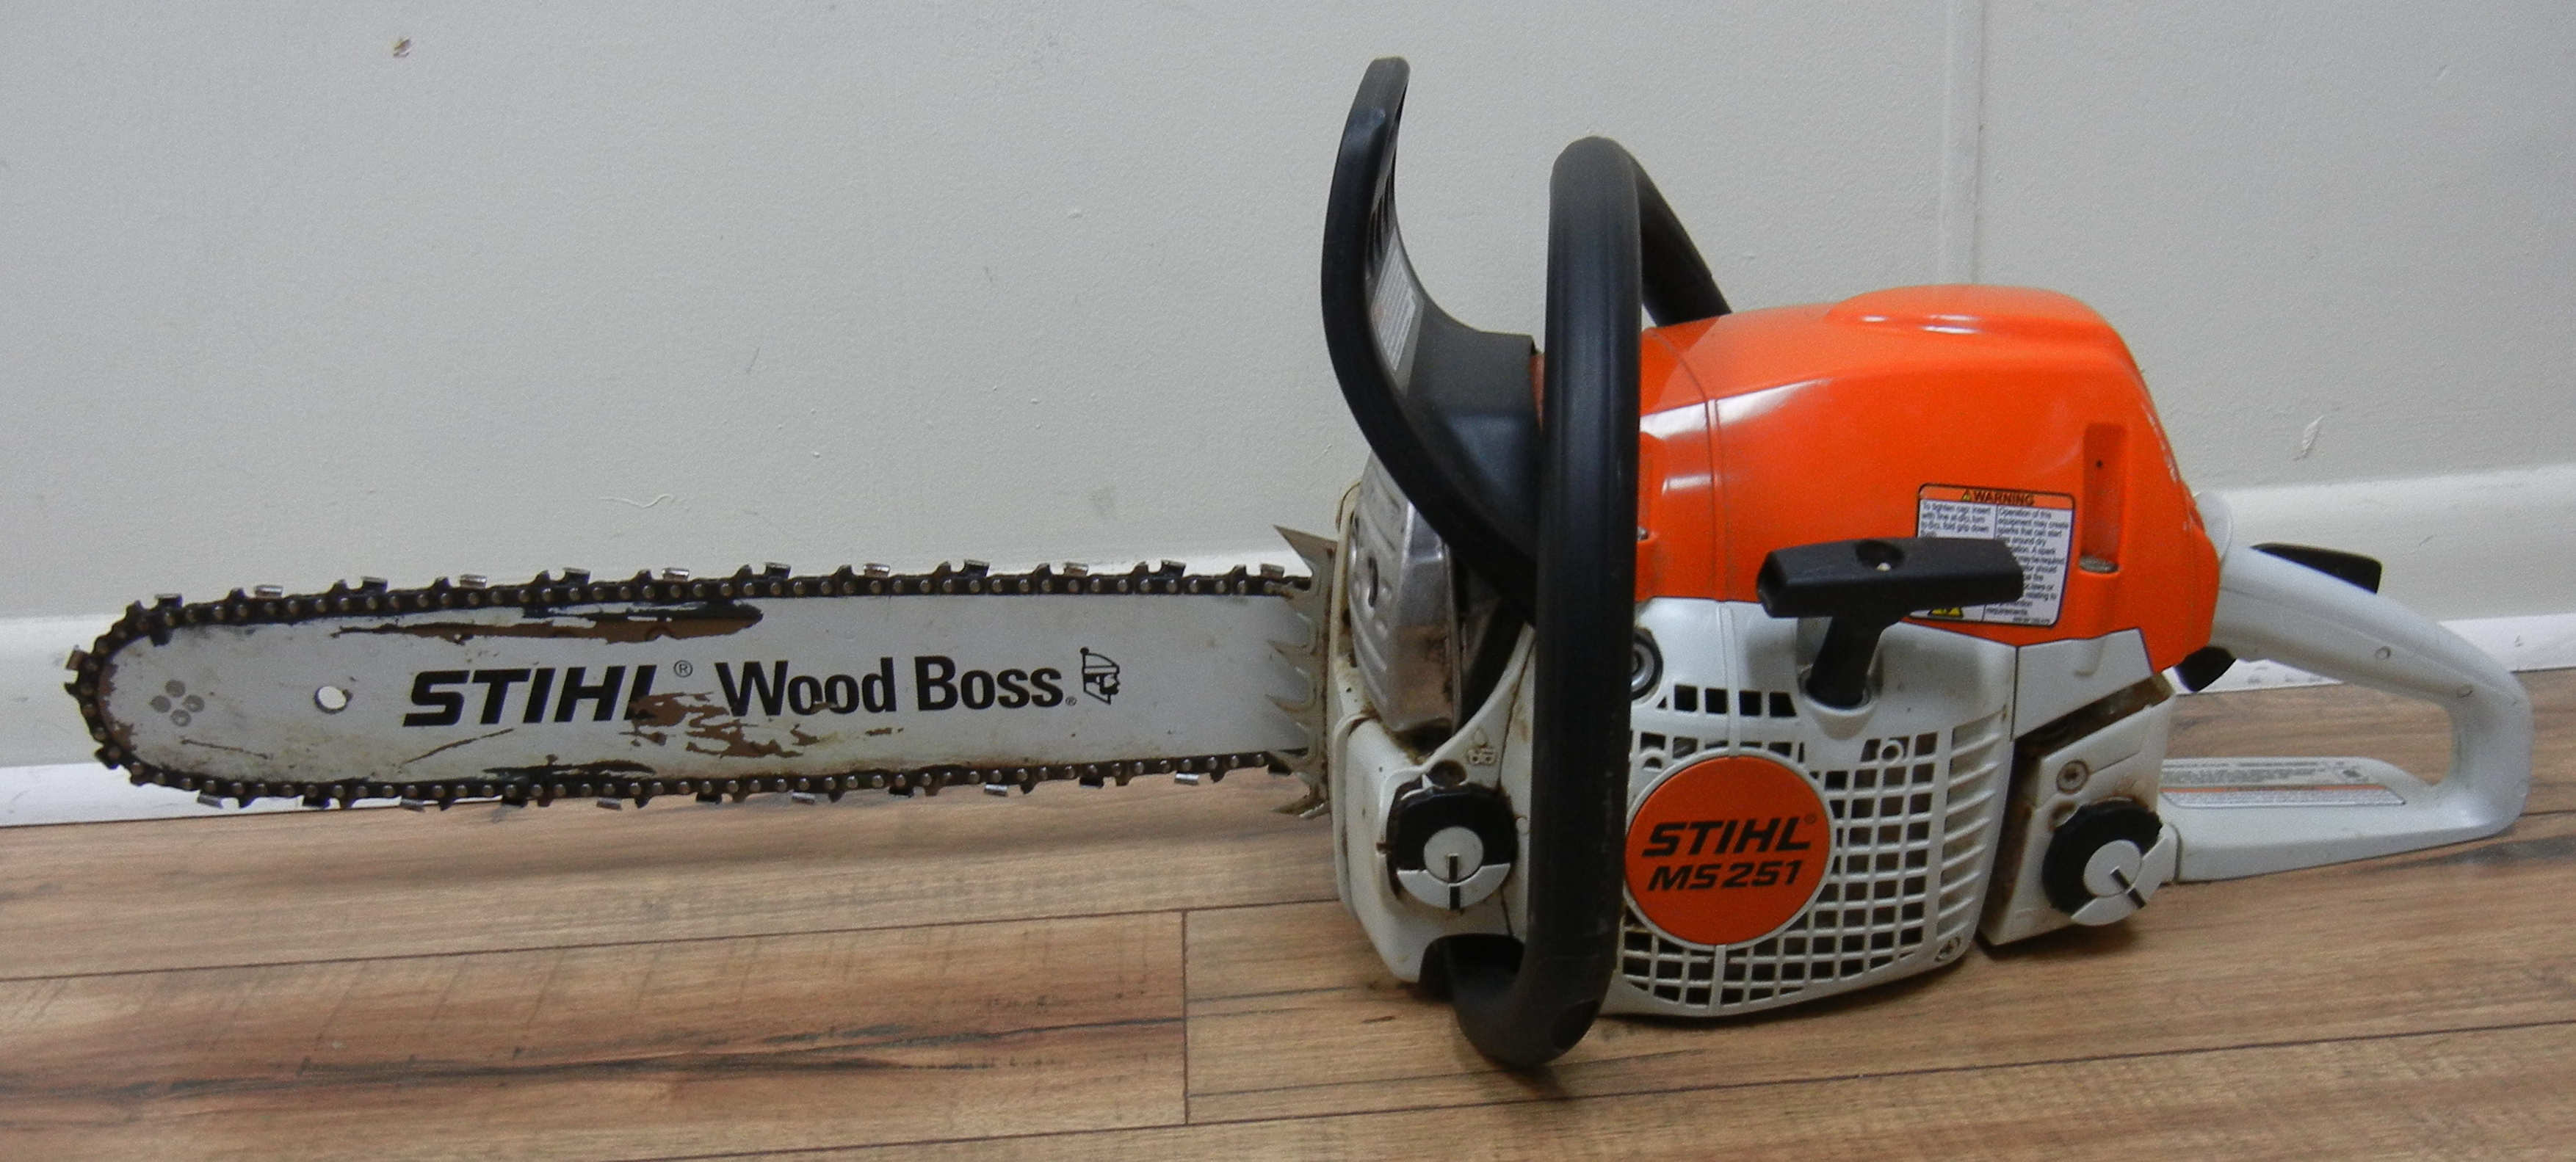 STIHL WOODBOSS MS251  18